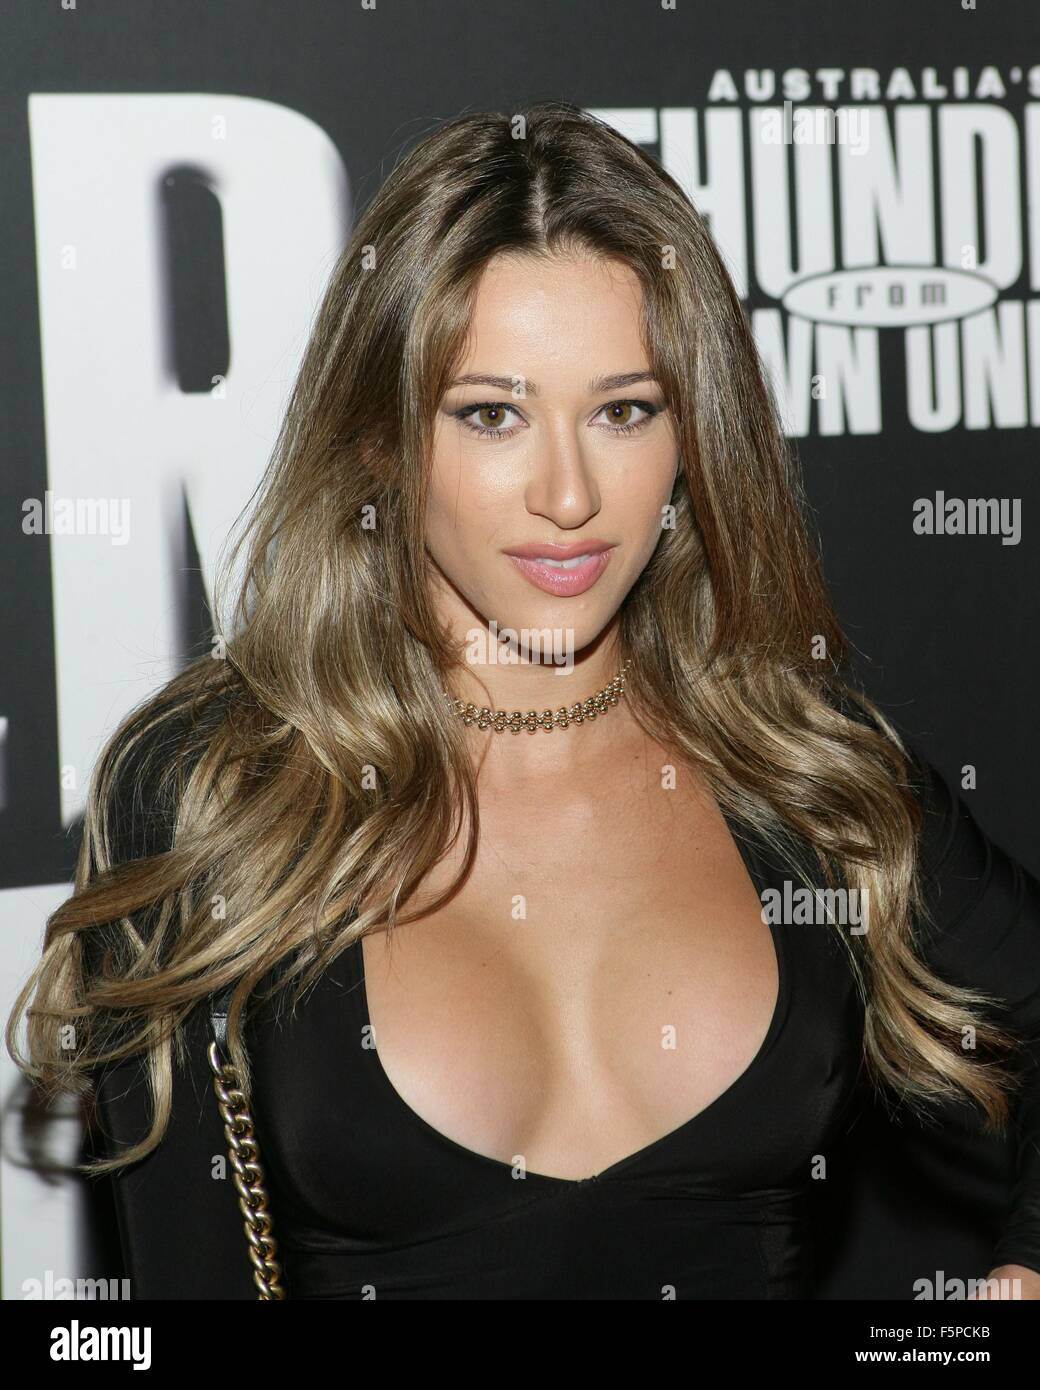 Cindy Prado nudes (66 photos), pictures Topless, Snapchat, butt 2020